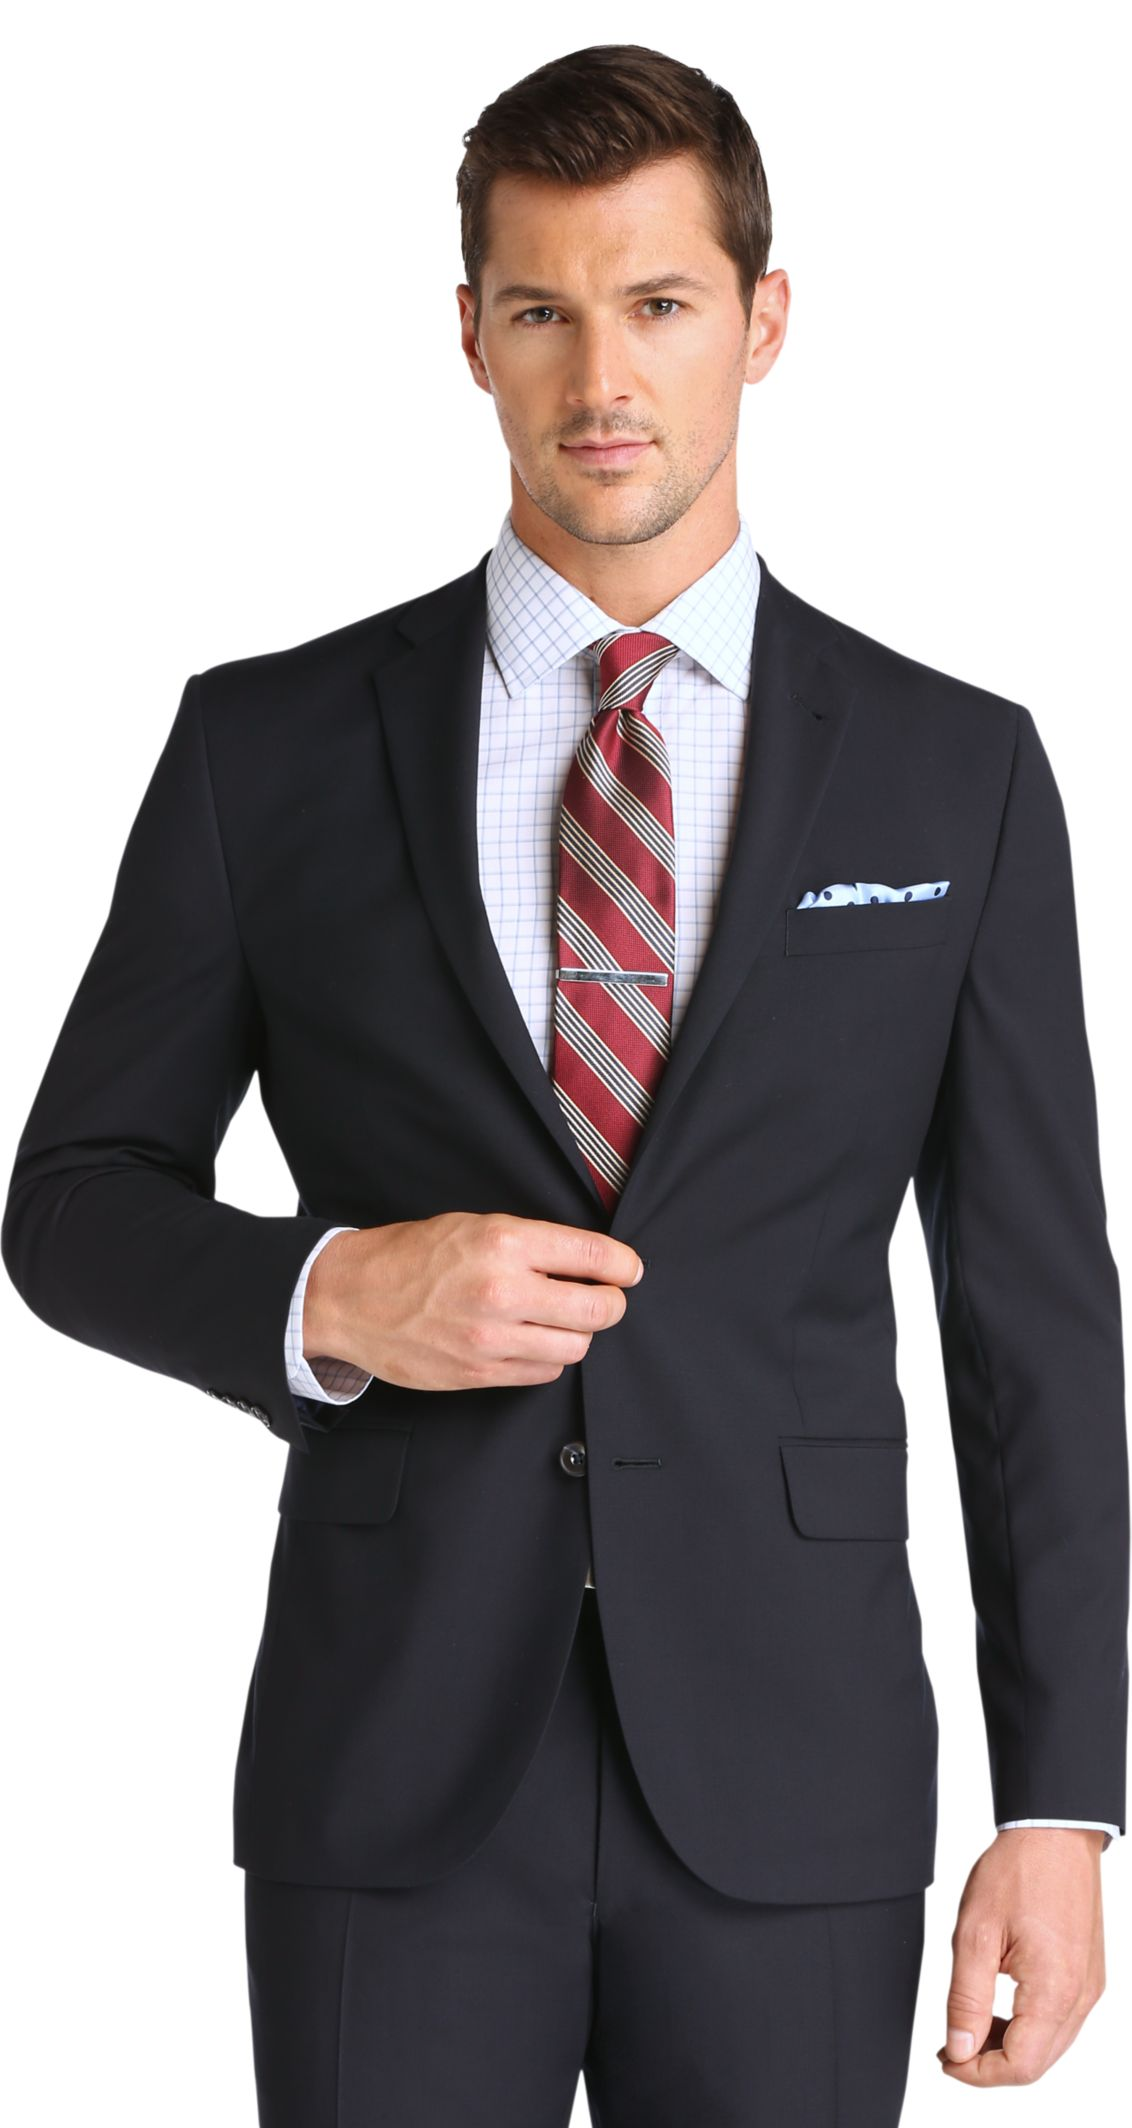 100% Wool Slim Fit Suit Separate Jacket - Men's Suits | JoS. A. Bank